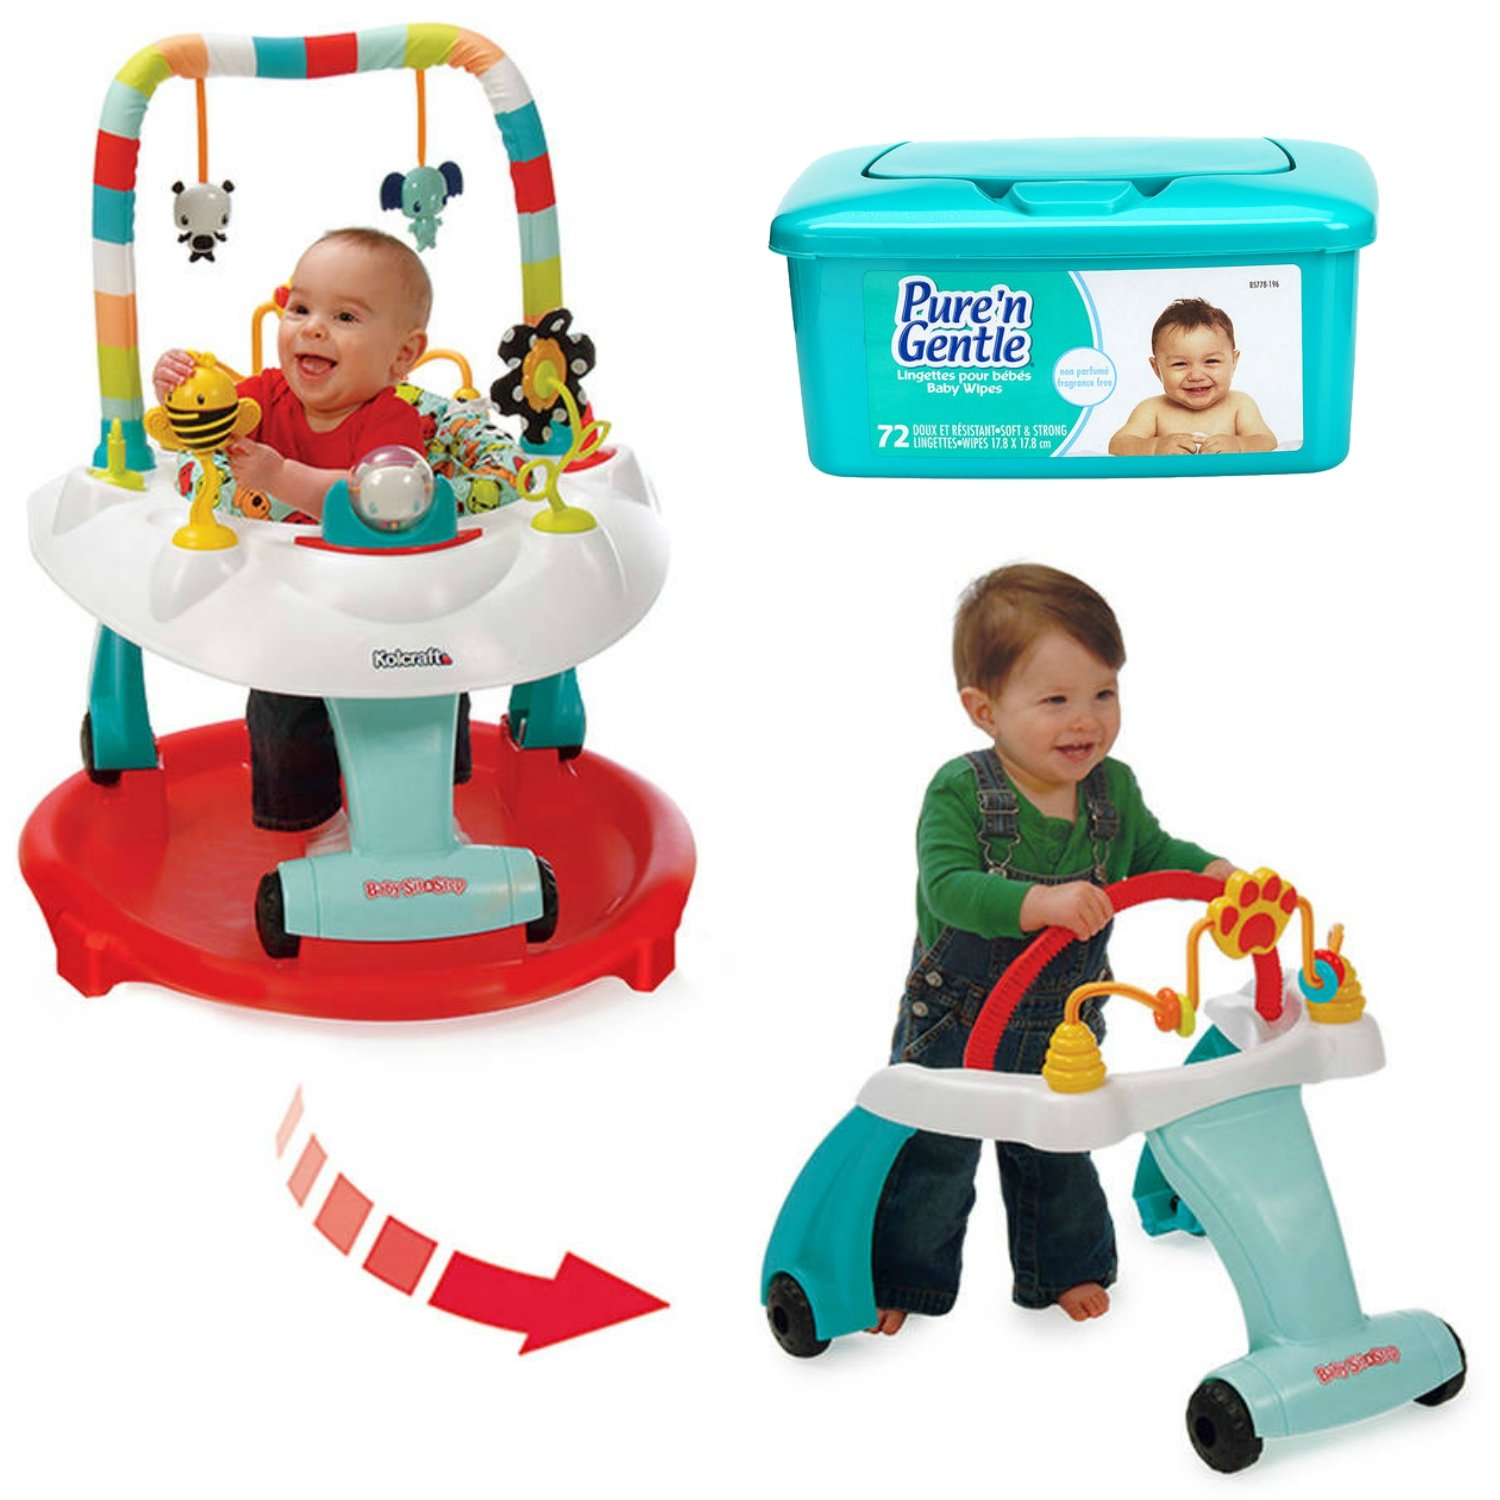 Kolcraft Baby Sit and Step 2-in-1 Baby Activity Center, Bear Hugs with Hypoallergenic Baby Wipes